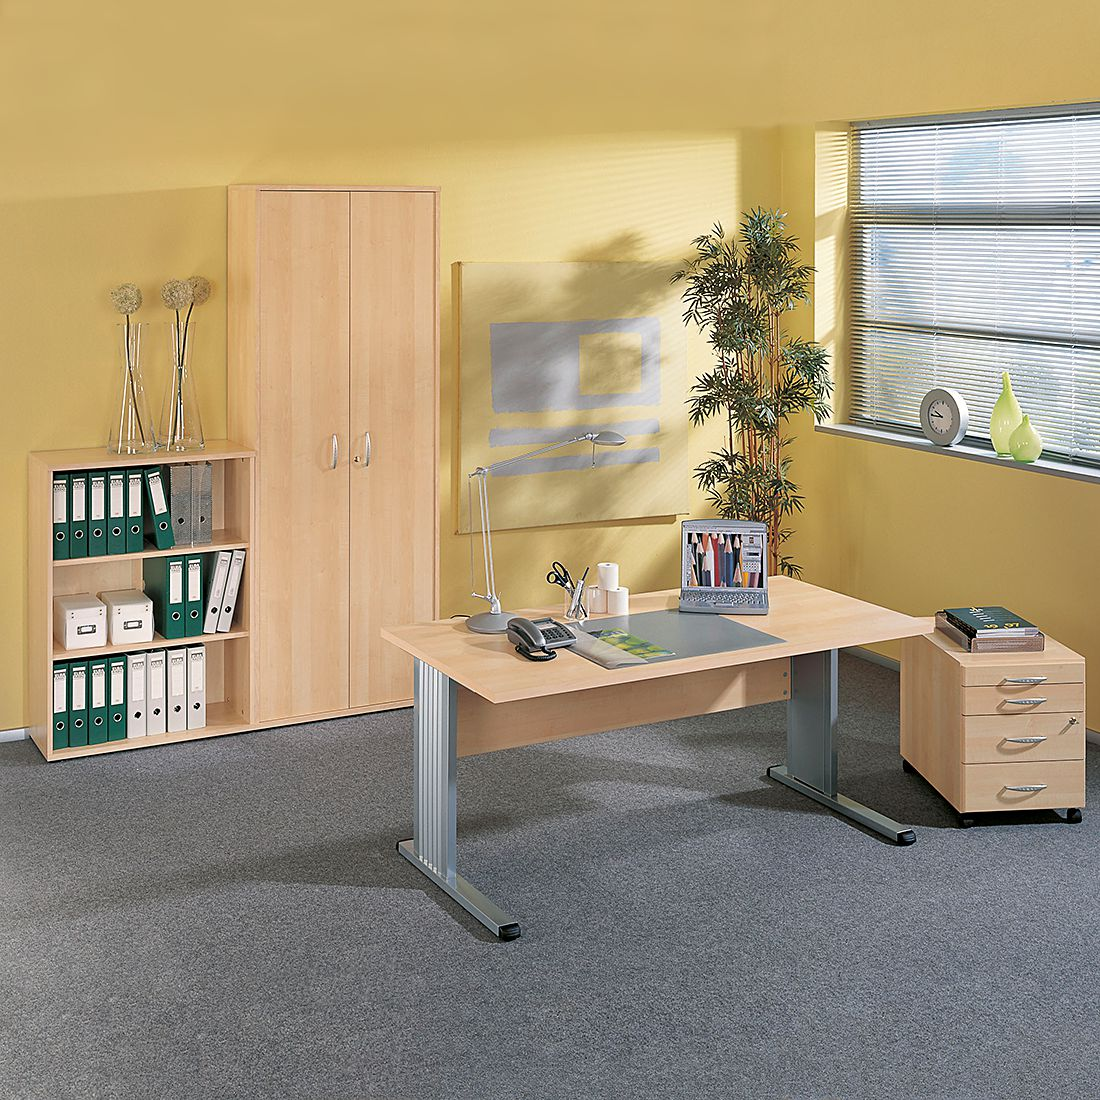 Mobilier de bureau Pontus Plus (4 éléments) - Imitation érable, Wellemöbel